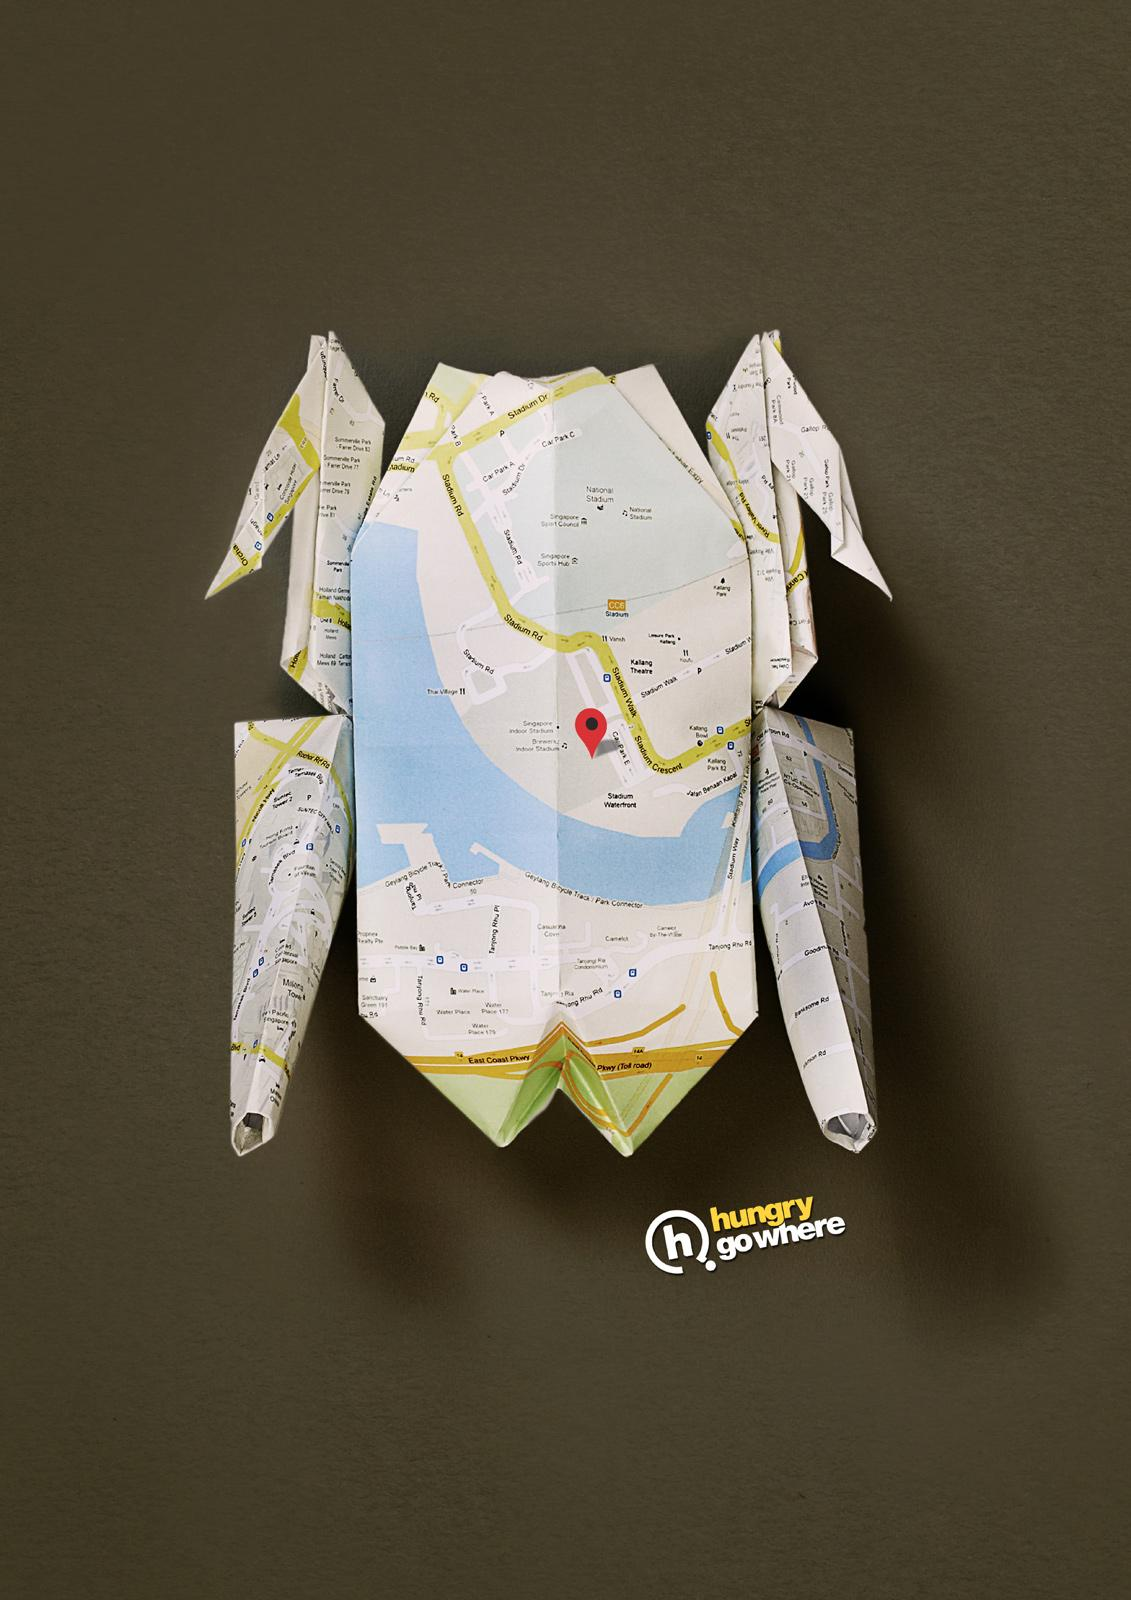 Hungry Go Where Print Ad -  Origami Chicken